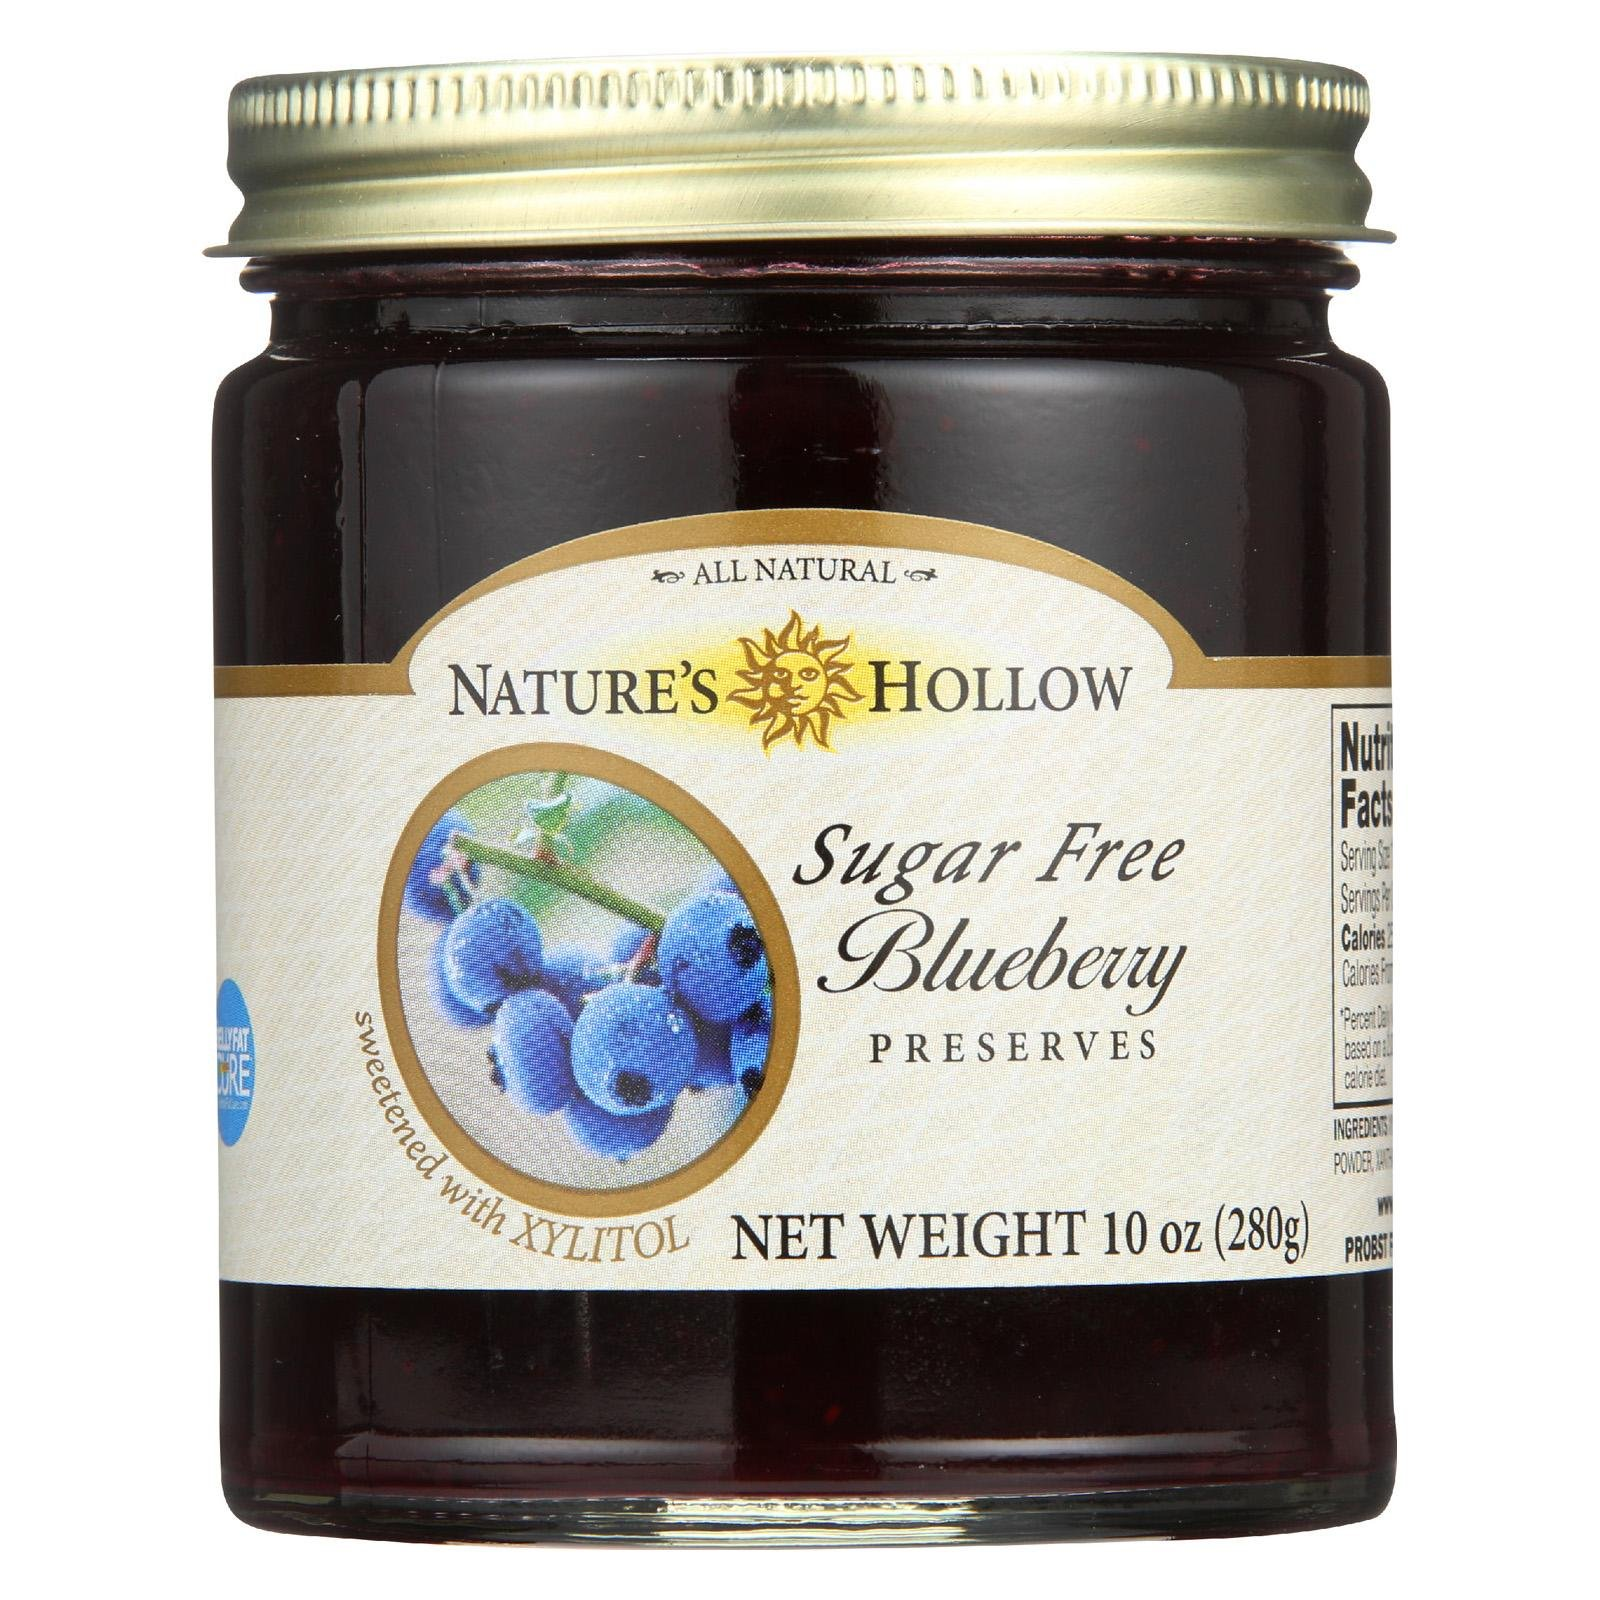 NATURE'S HOLLOW, PRESERVES, BLUEBERRY, SF - Pack of 6